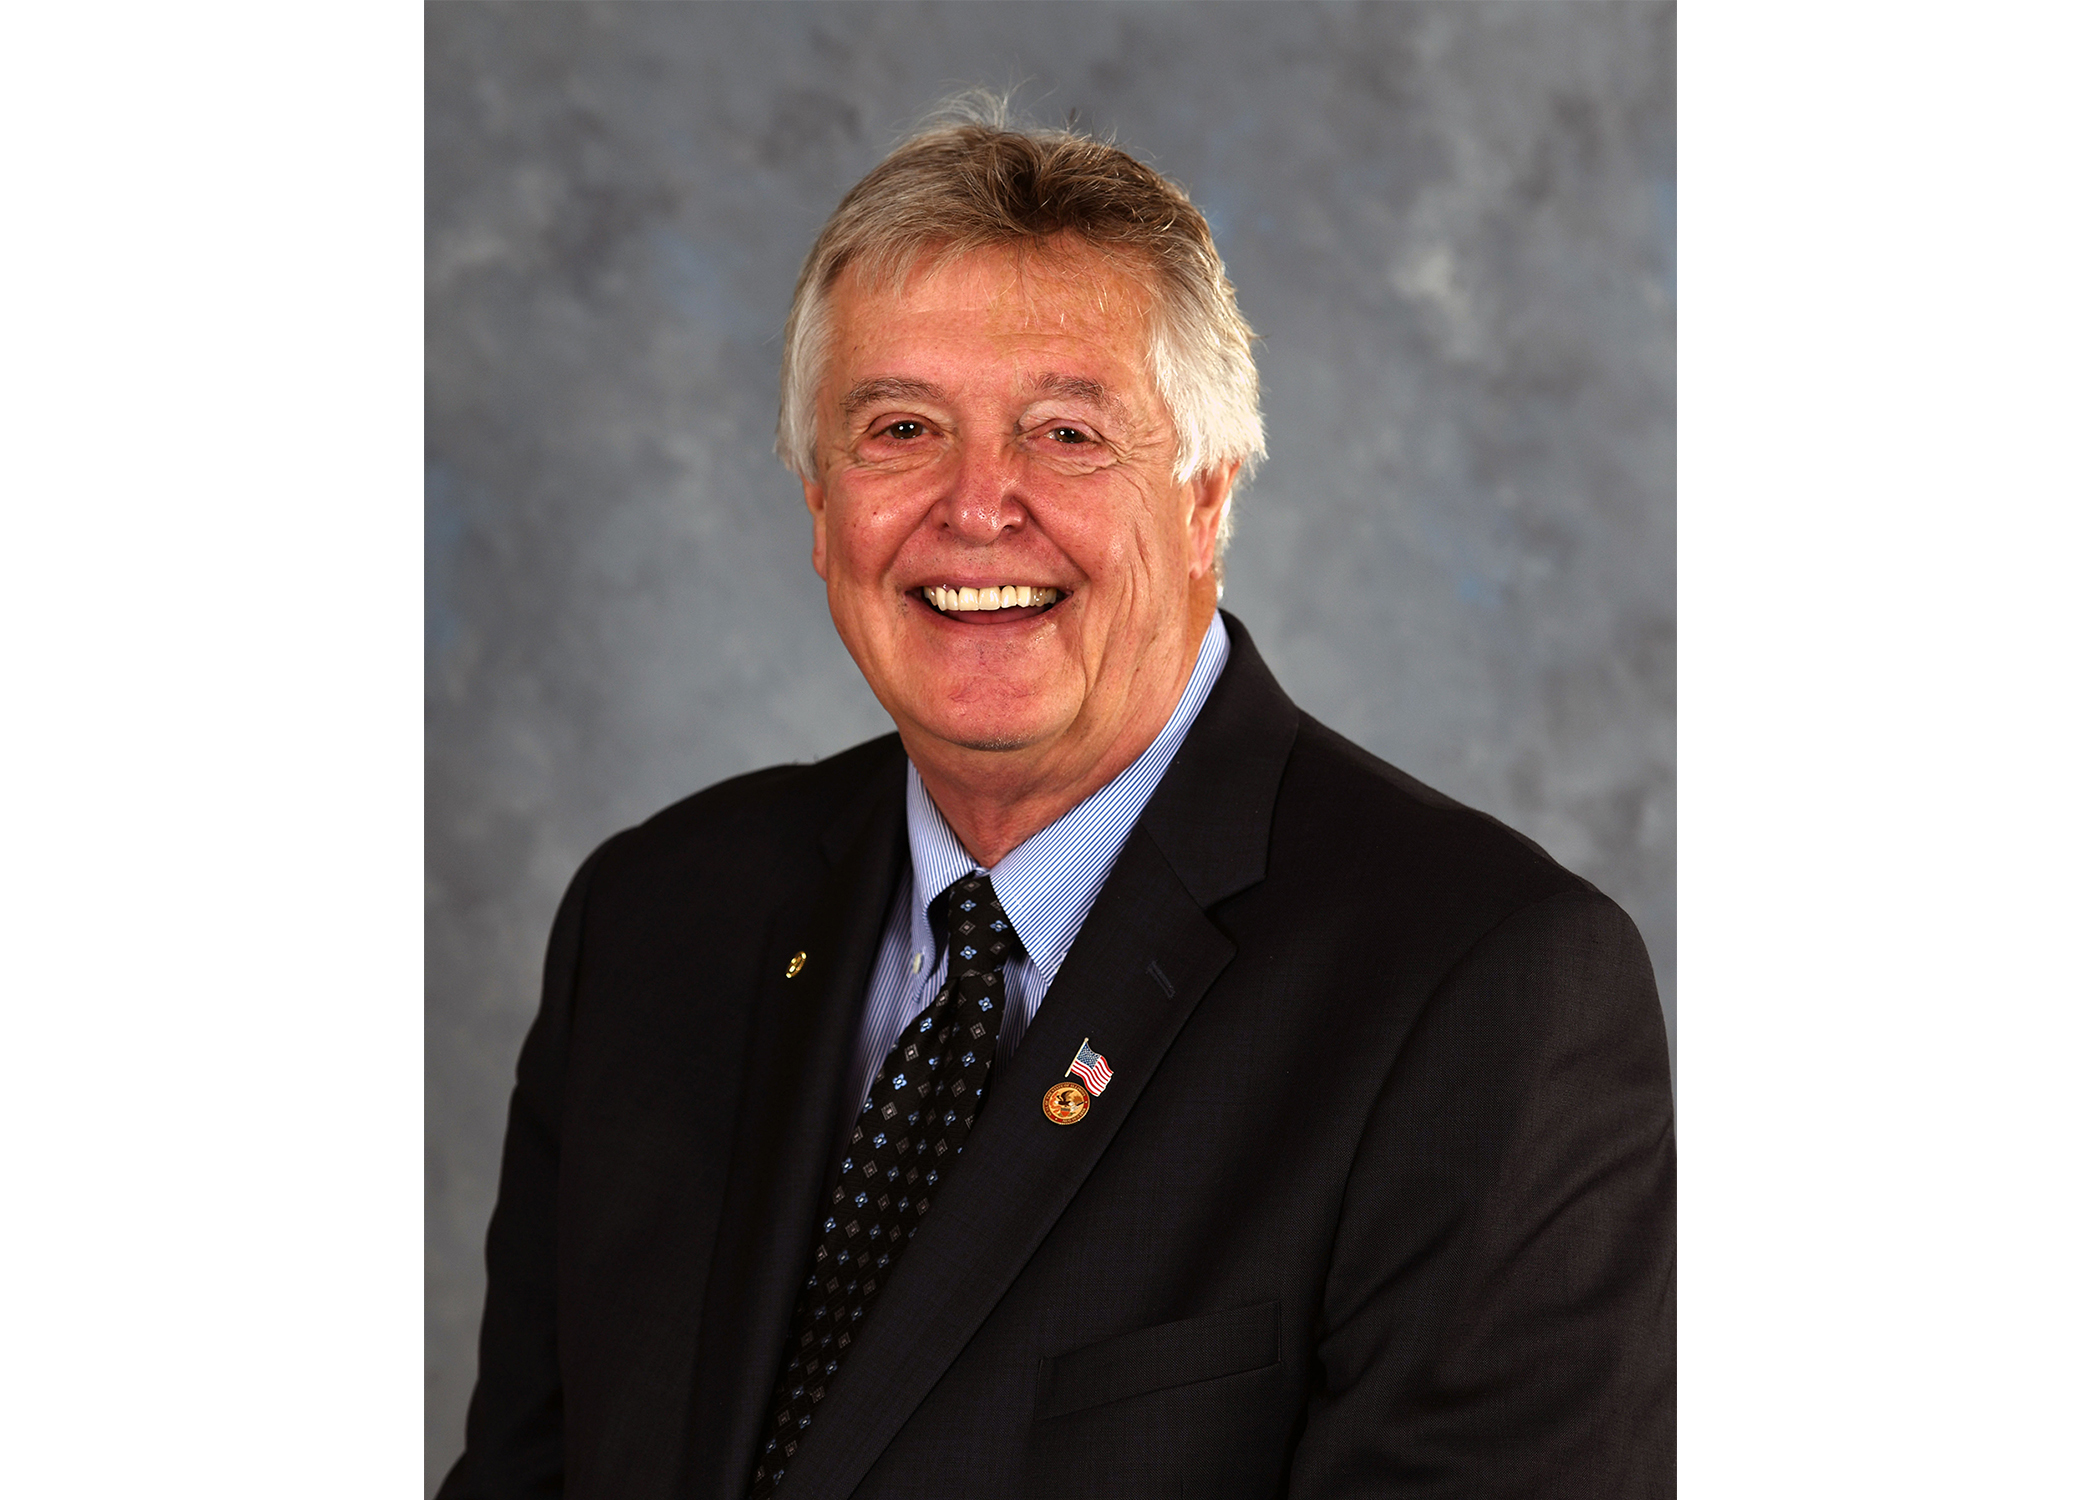 Steve Reick, Illinois House 63rd District Republican nominee and incumbent, 2020 election candidate questionnaire